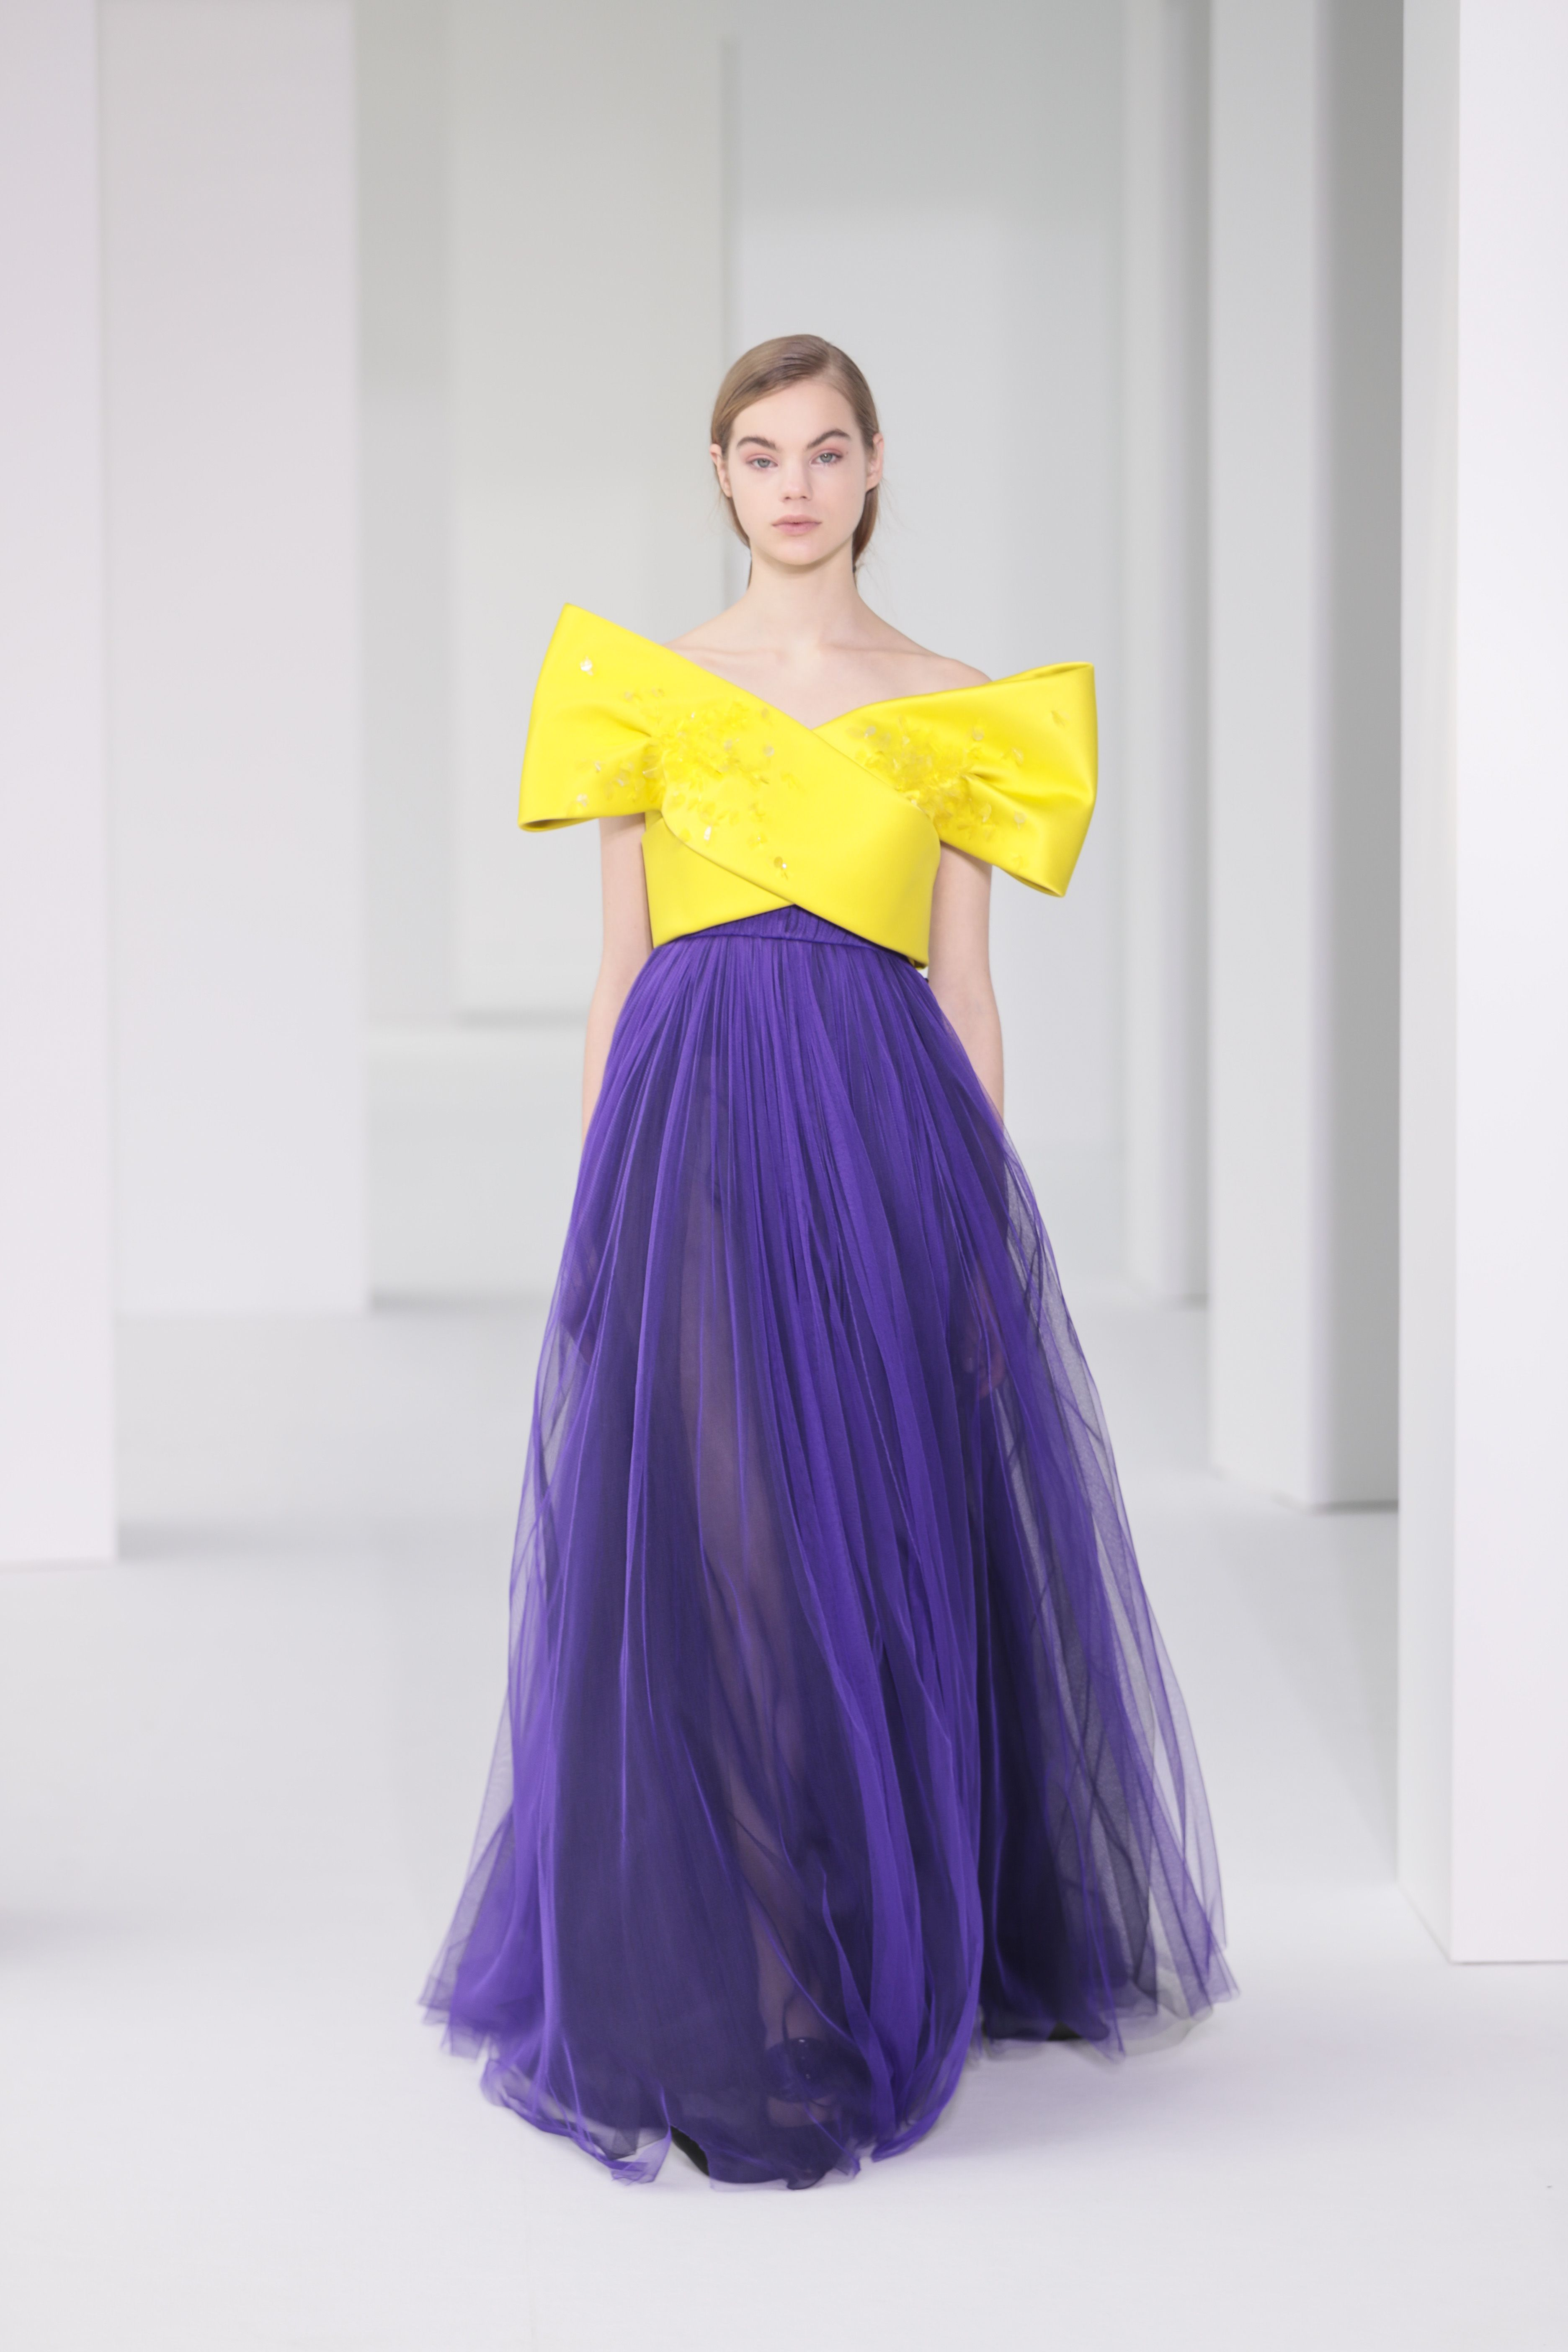 Delpozo FW17 Collection | Diseñadores | Pinterest | Vestido largo ...